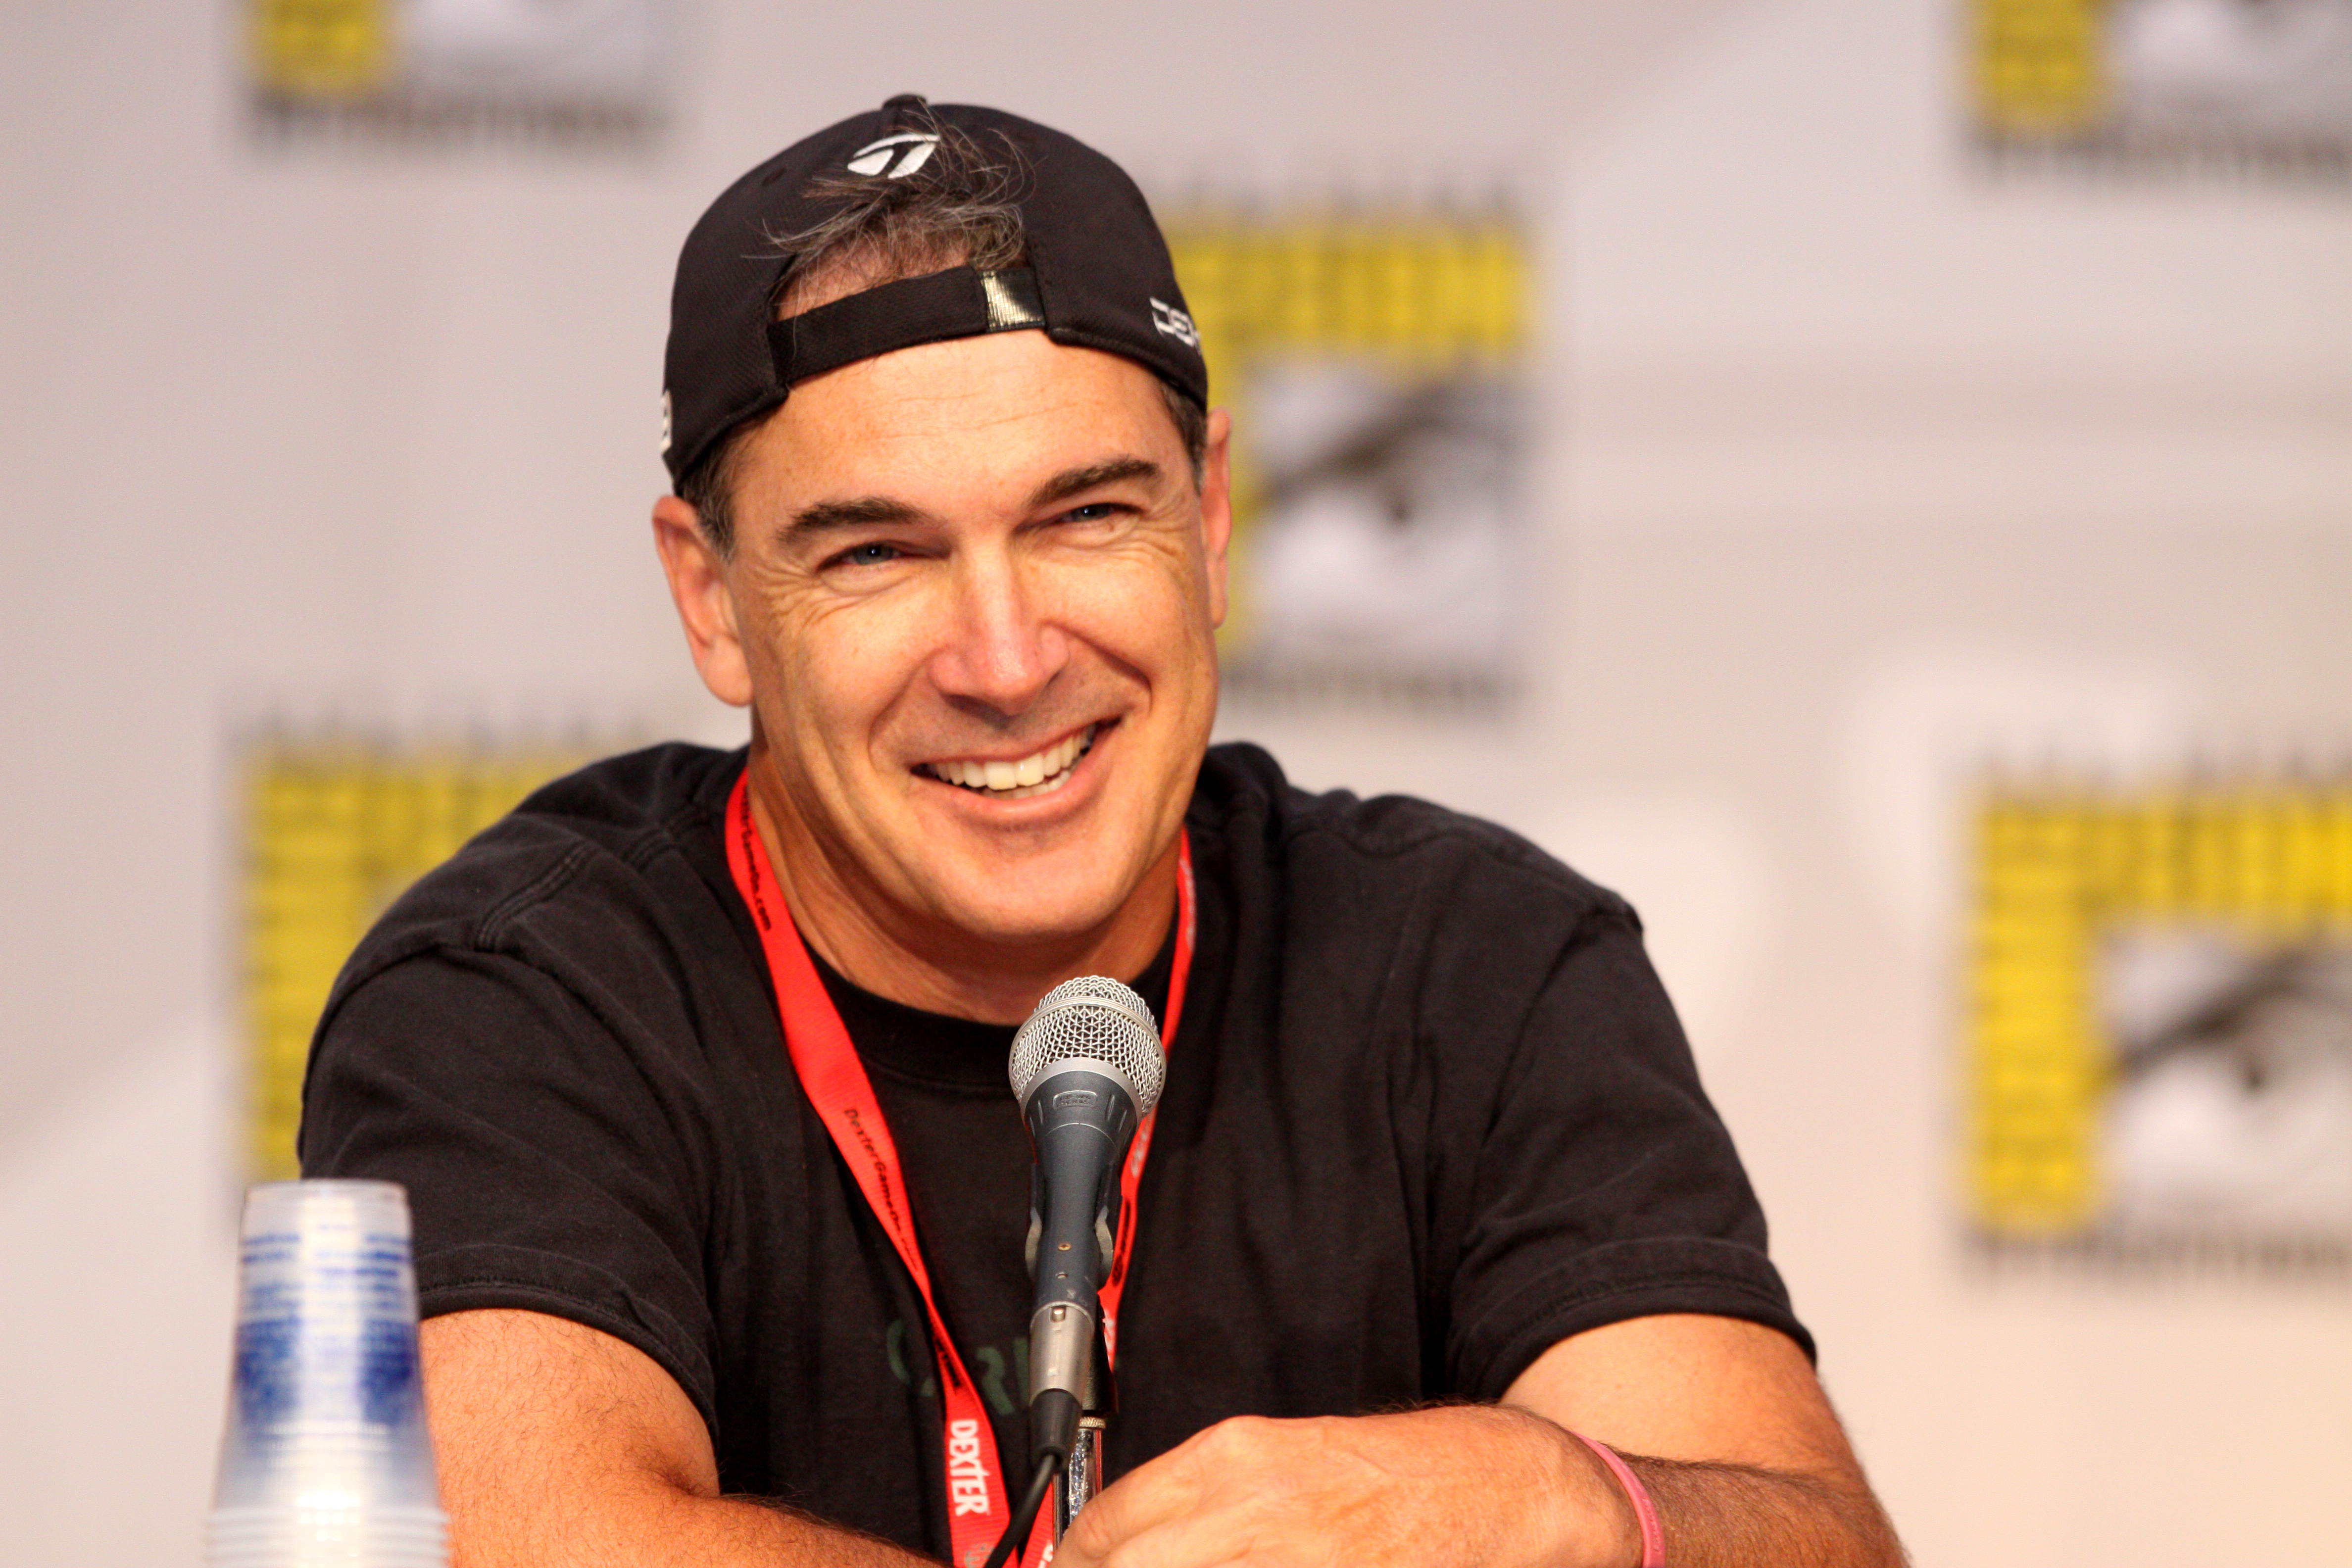 patrick warburton wifepatrick warburton wife, patrick warburton lemony snicket, patrick warburton joe swanson, patrick warburton tick, patrick warburton wiki, patrick warburton bee movie, patrick warburton looks like, patrick warburton league of legends, patrick warburton twitter, patrick warburton tales from the borderlands, patrick warburton sings, patrick warburton vs jude law, patrick warburton voice actor, patrick warburton audiobooks, patrick warburton weight and height, patrick warburton instagram